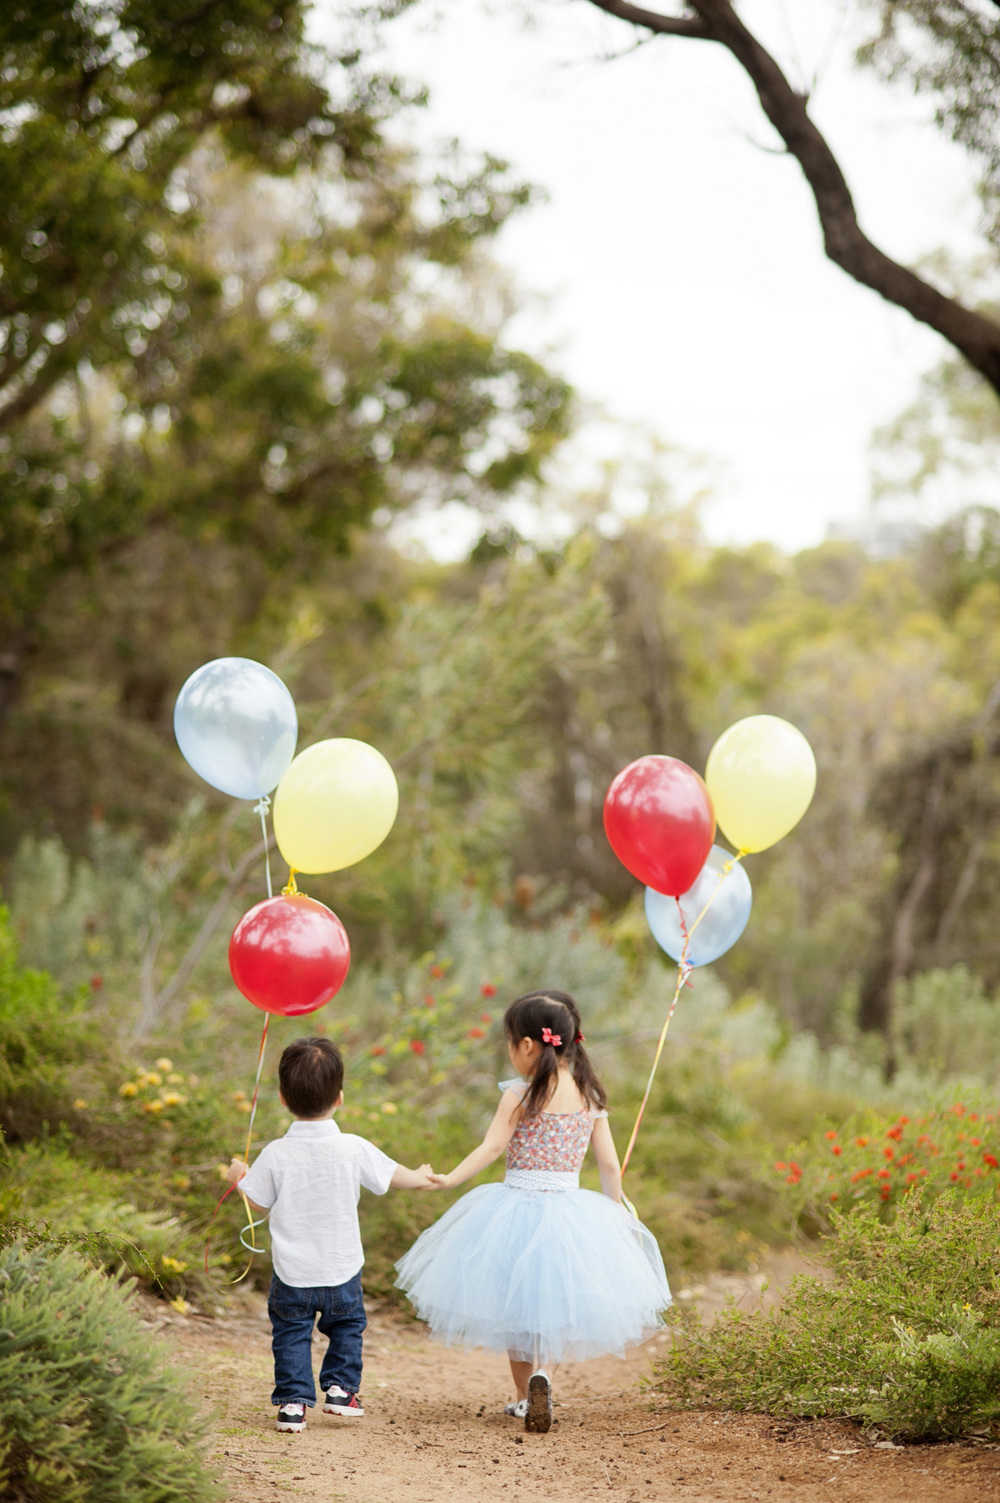 cute kids with helium balloons portrait photo shoot